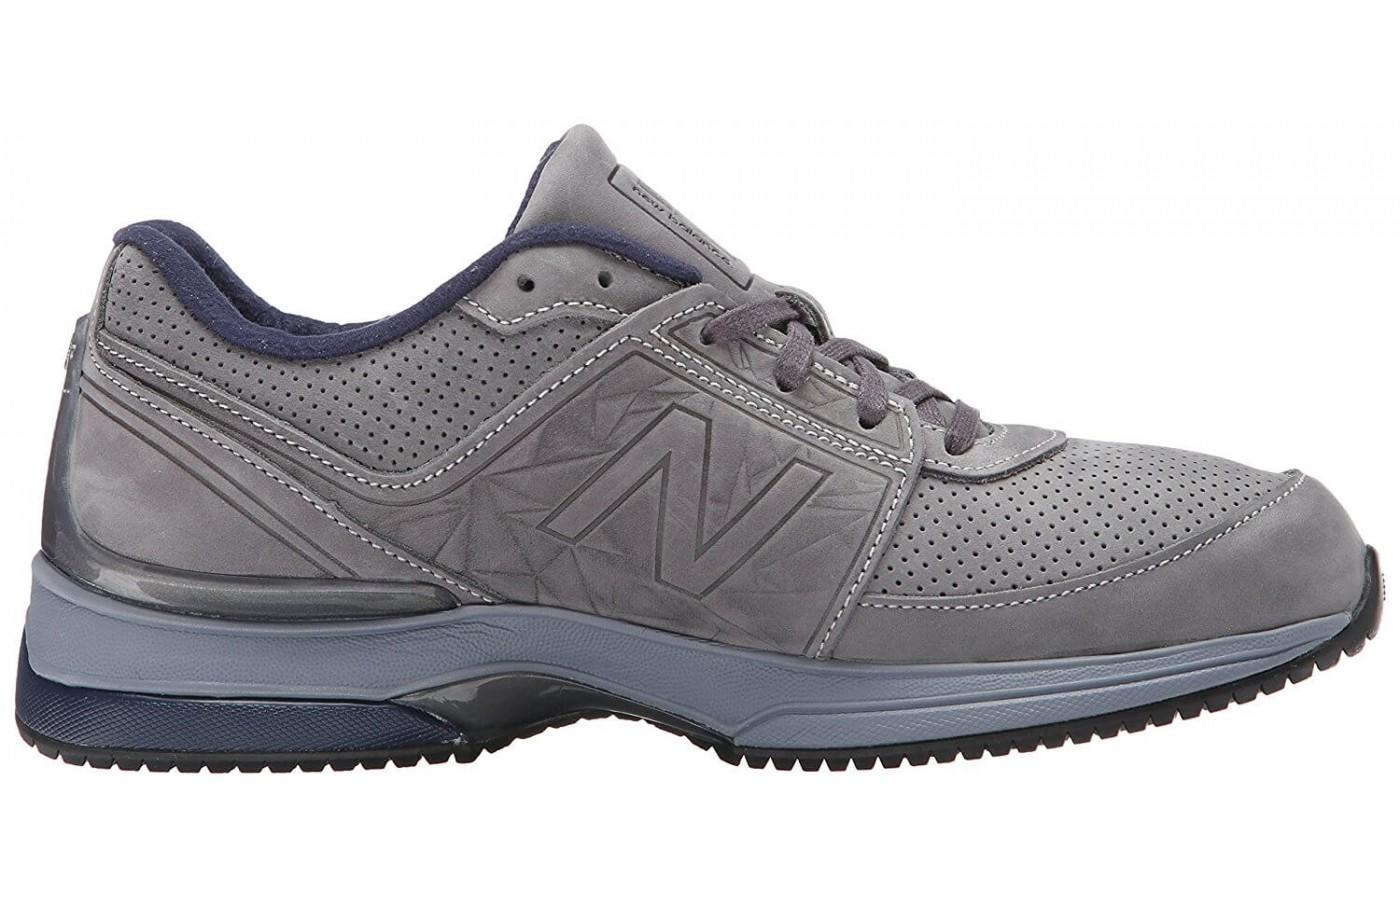 Sideview of the New Balance 2040 v3